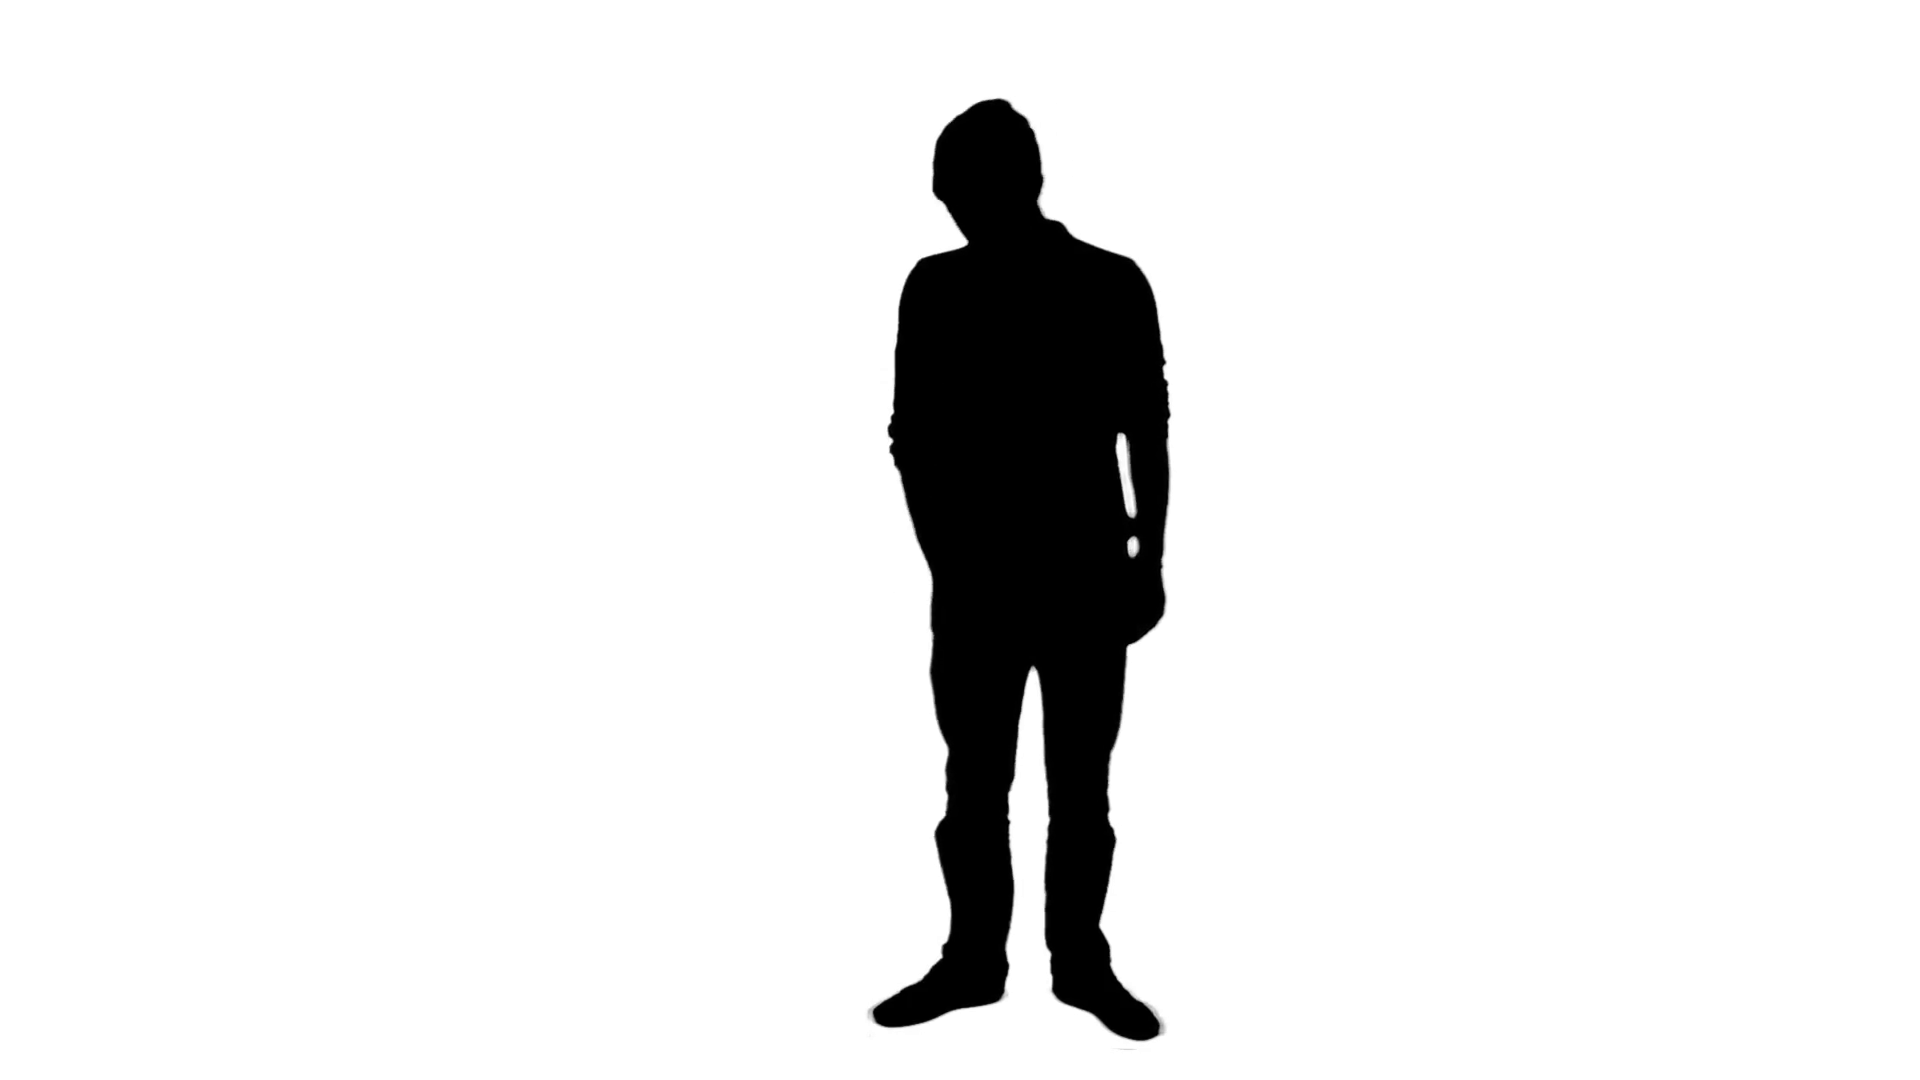 1920x1080 Incoming Call Mobile Phone Silhouette Man